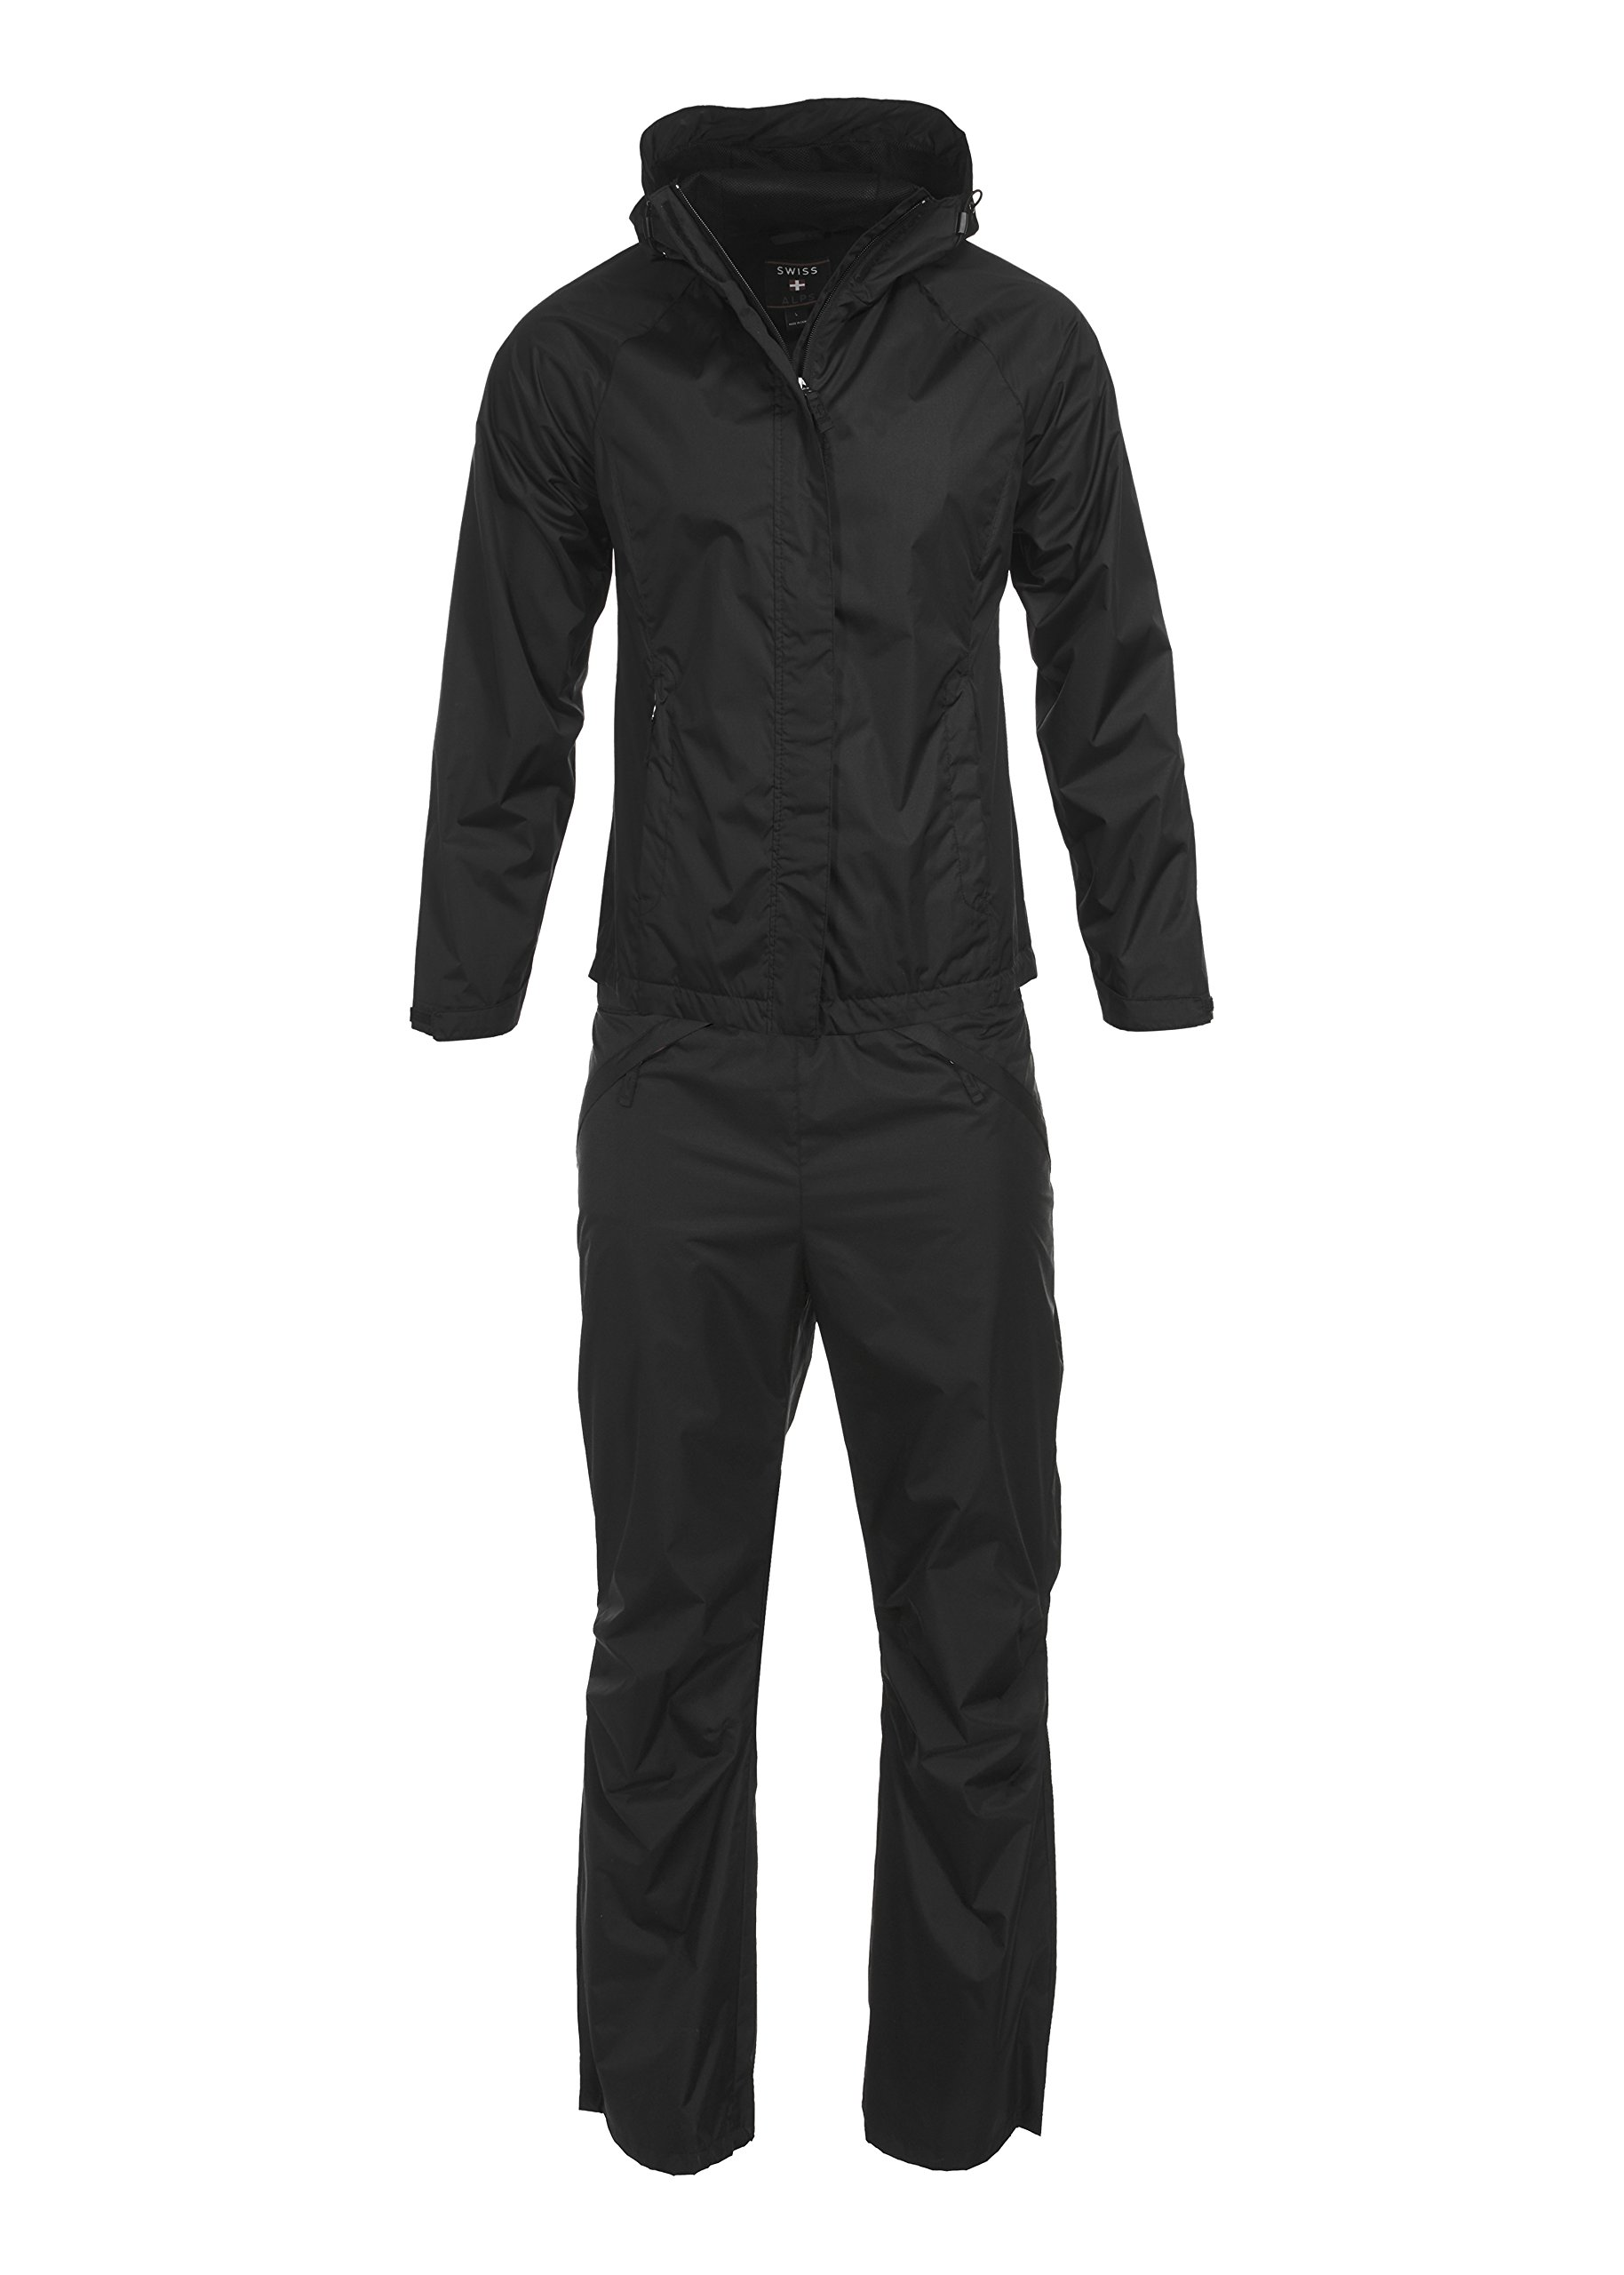 Swiss Alps Womens Ripstop Water-Resistant 2 Piece Rain Suit Black M